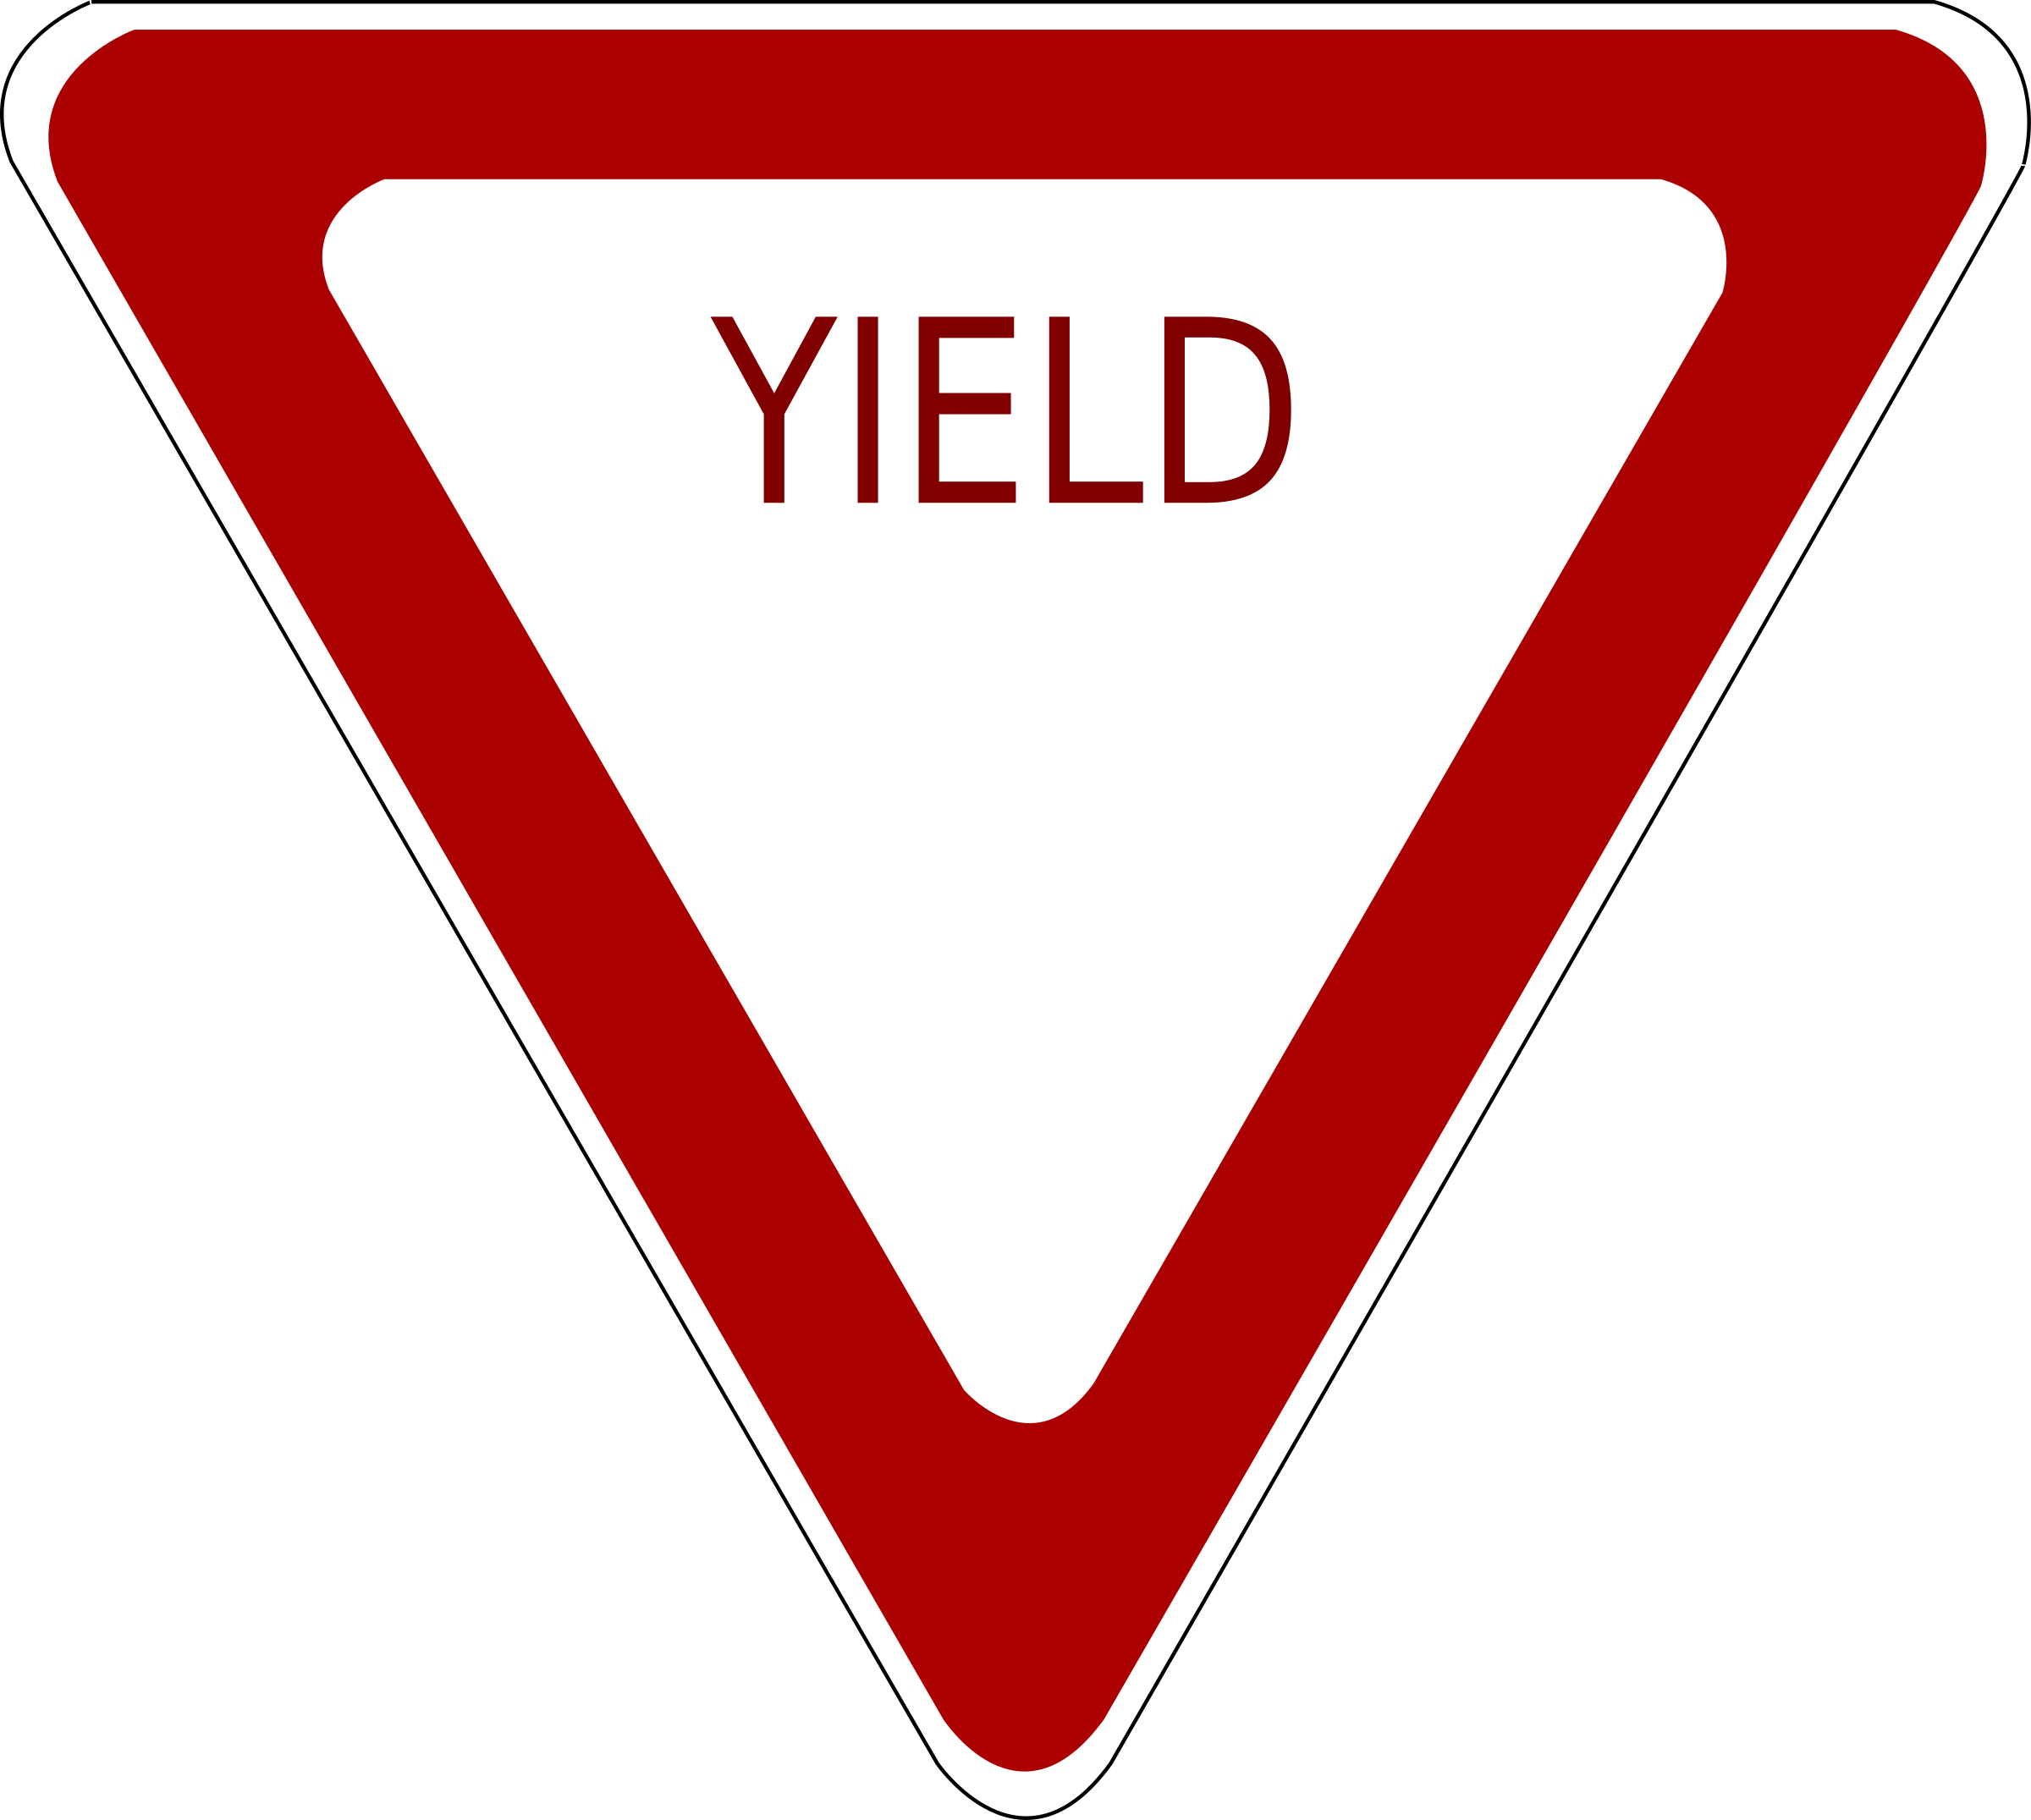 Yield Road Sign by schoolfreeware